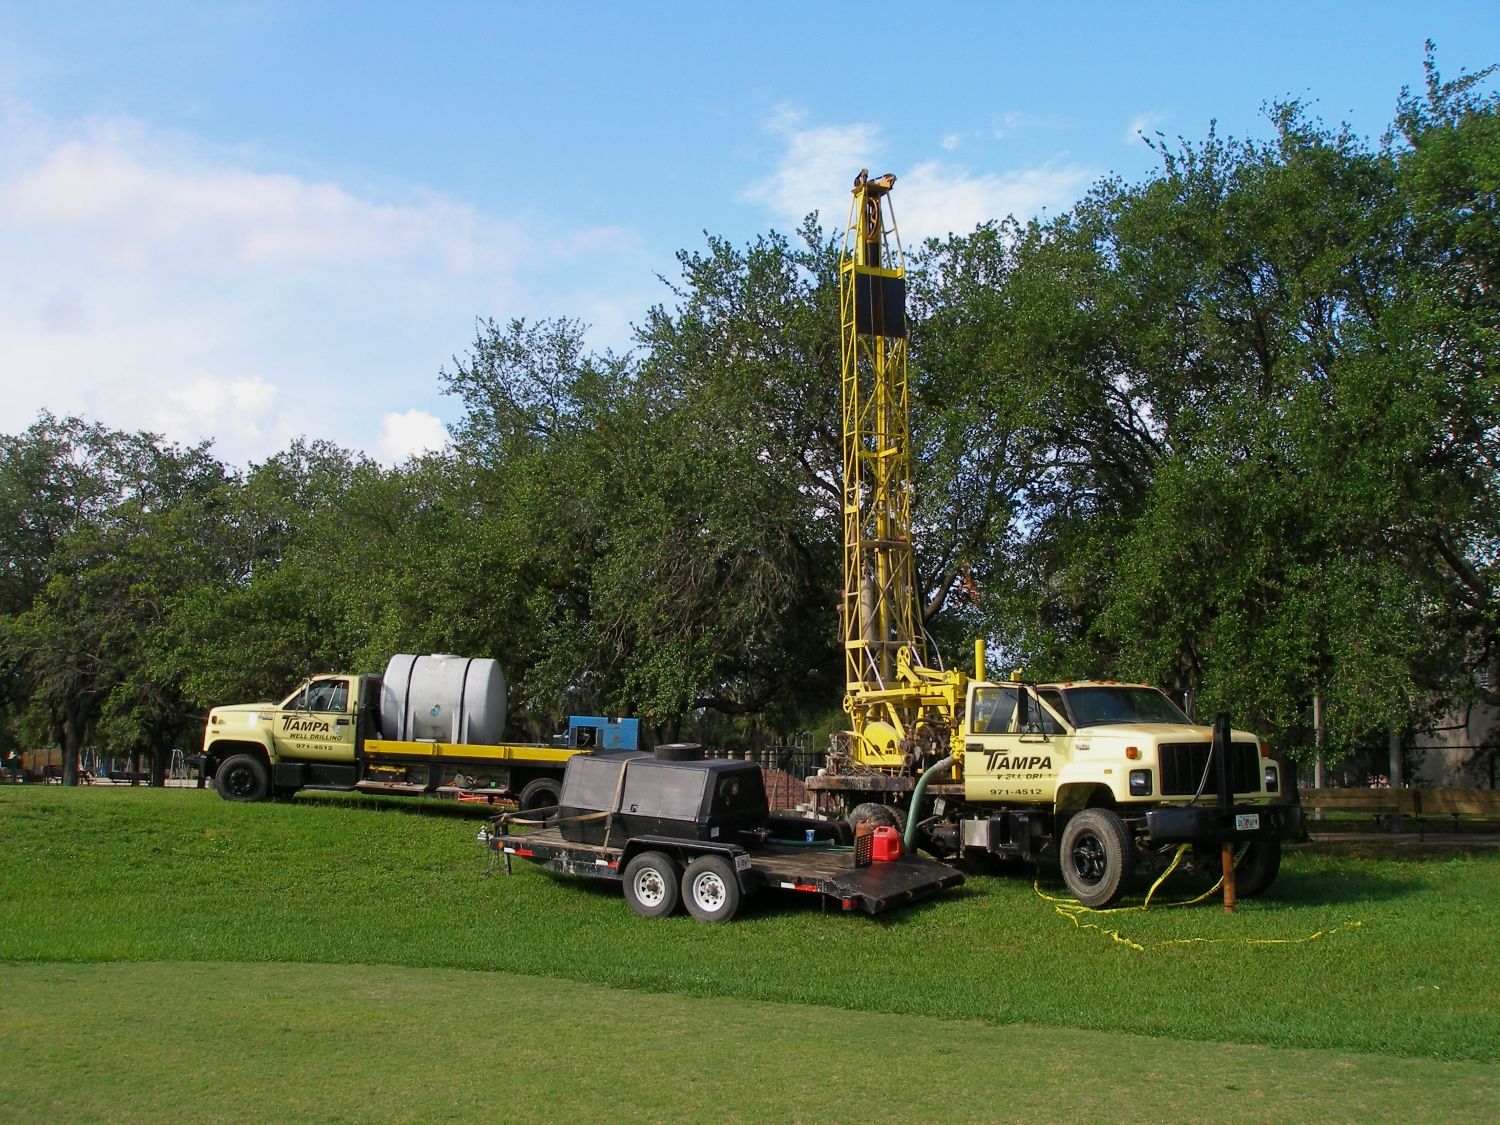 With over 100 years of combined experience, our skilled staff can handle your water well needs. -